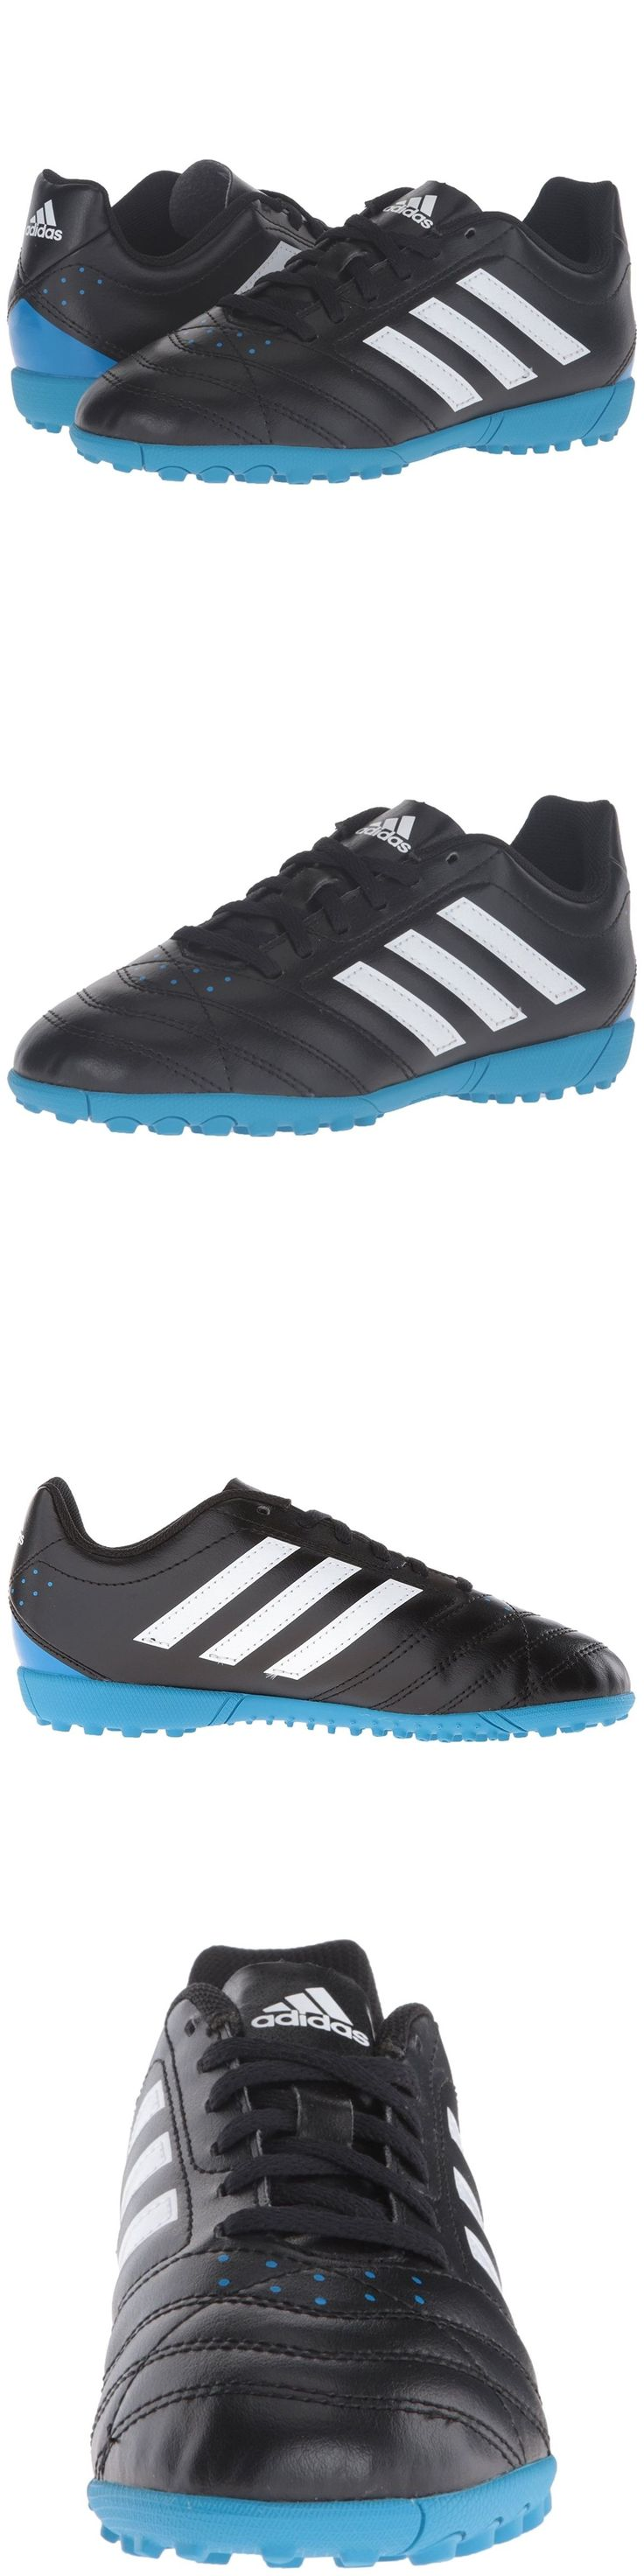 Youth 159177: Adidas Goletto V Tf Junior Soccer Shoes Boys European Football Shoes Black New -> BUY IT NOW ONLY: $35.95 on eBay!